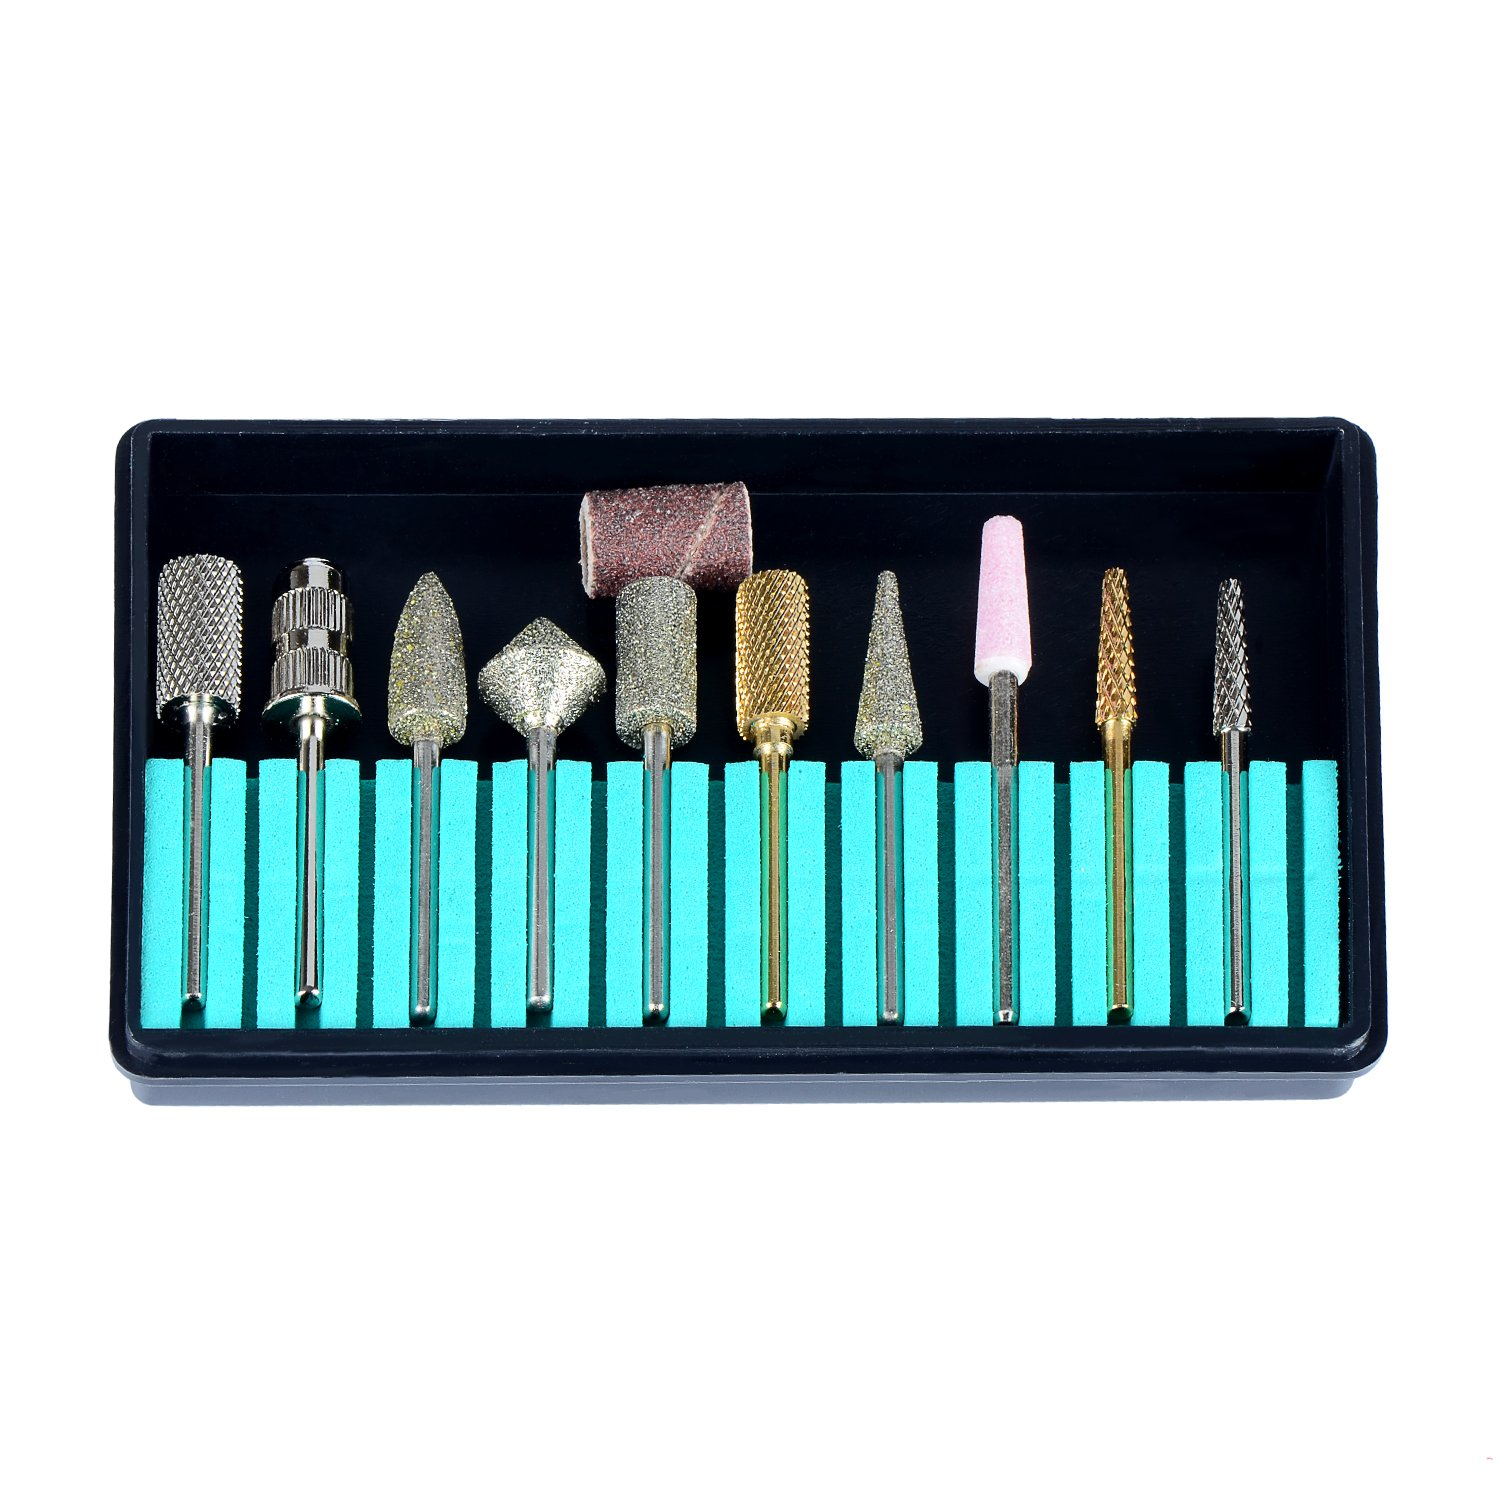 SpeTool Nail Art Drill Bits Tools Kit 3/32'' For Manicure Pedicure 10Pcs/Pack Assorted by SpeTool